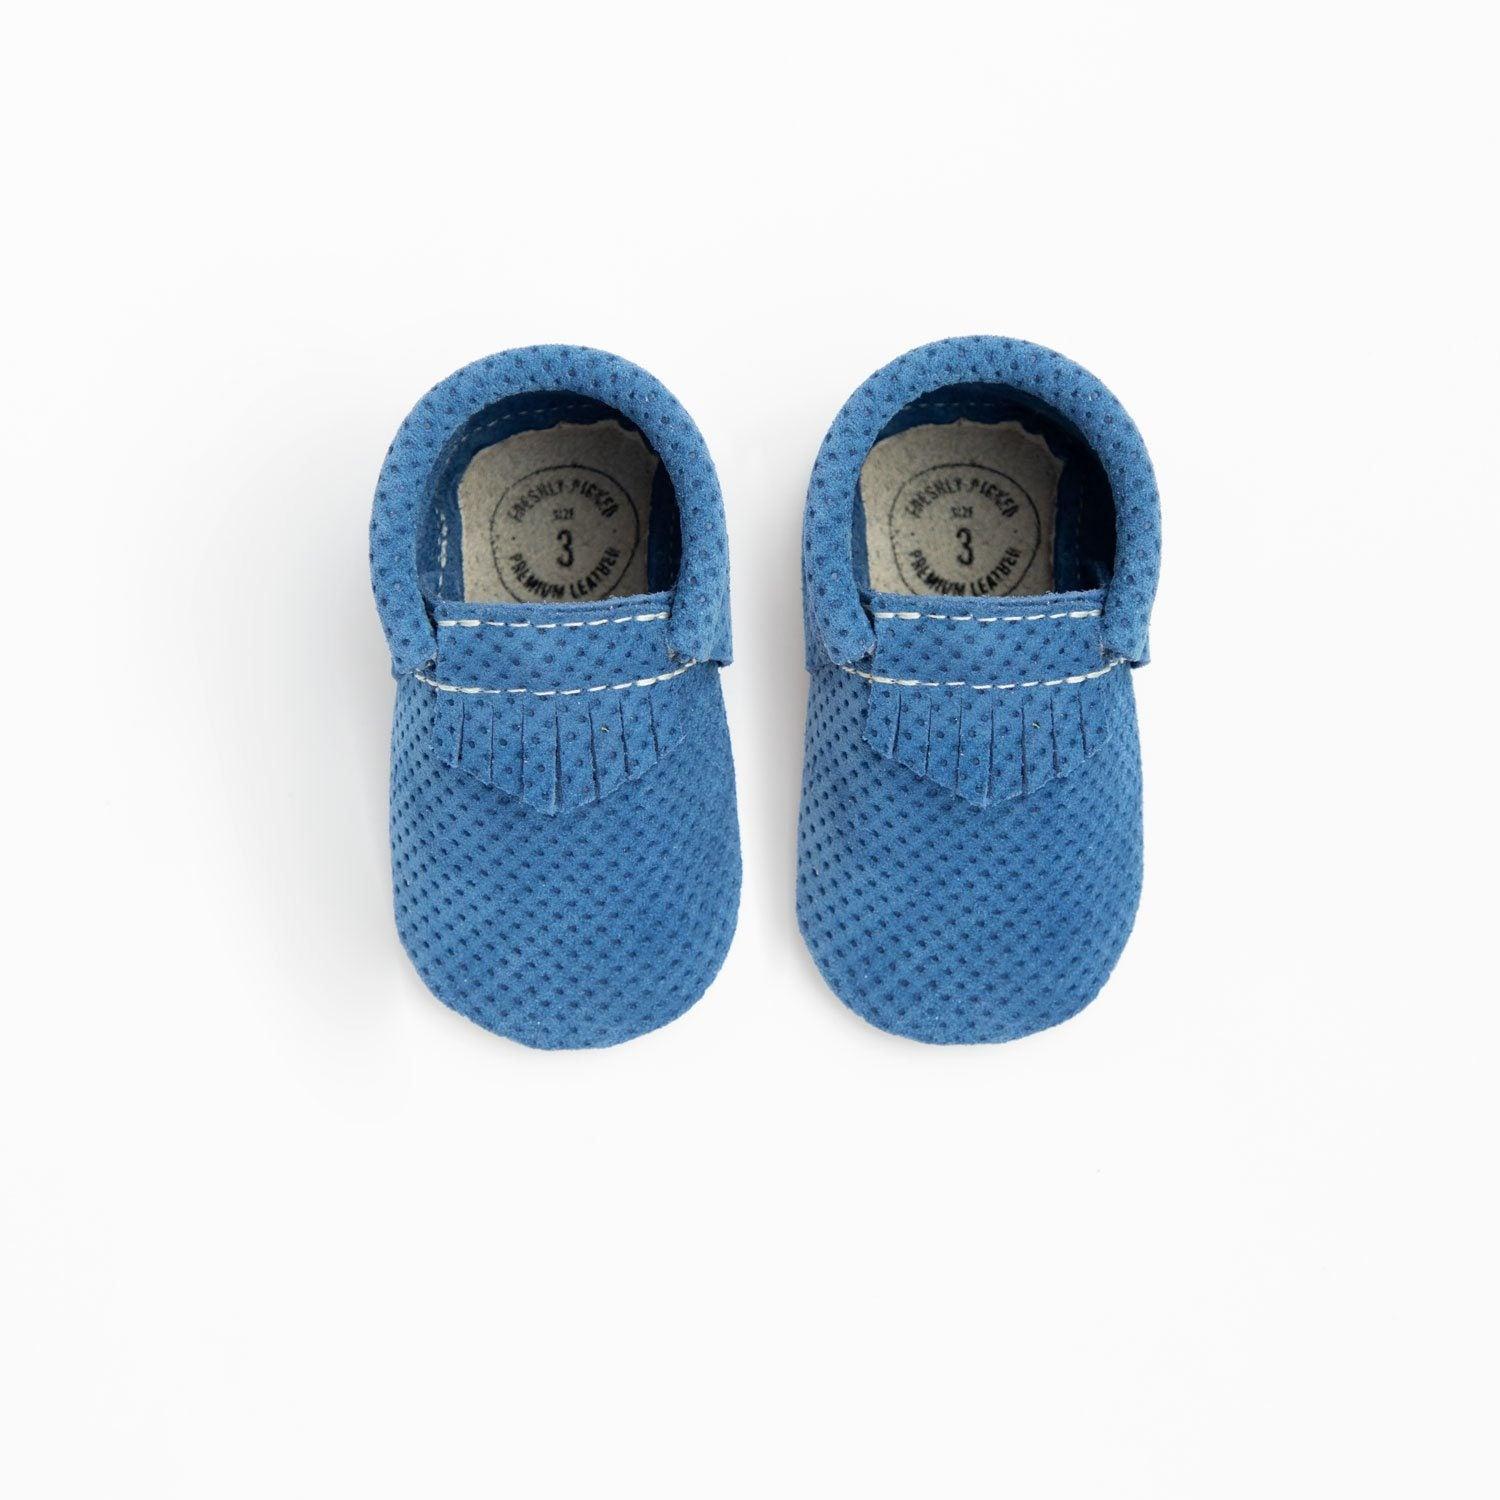 Cobalt Perforated Suede City Mocc City Moccs Soft Soles